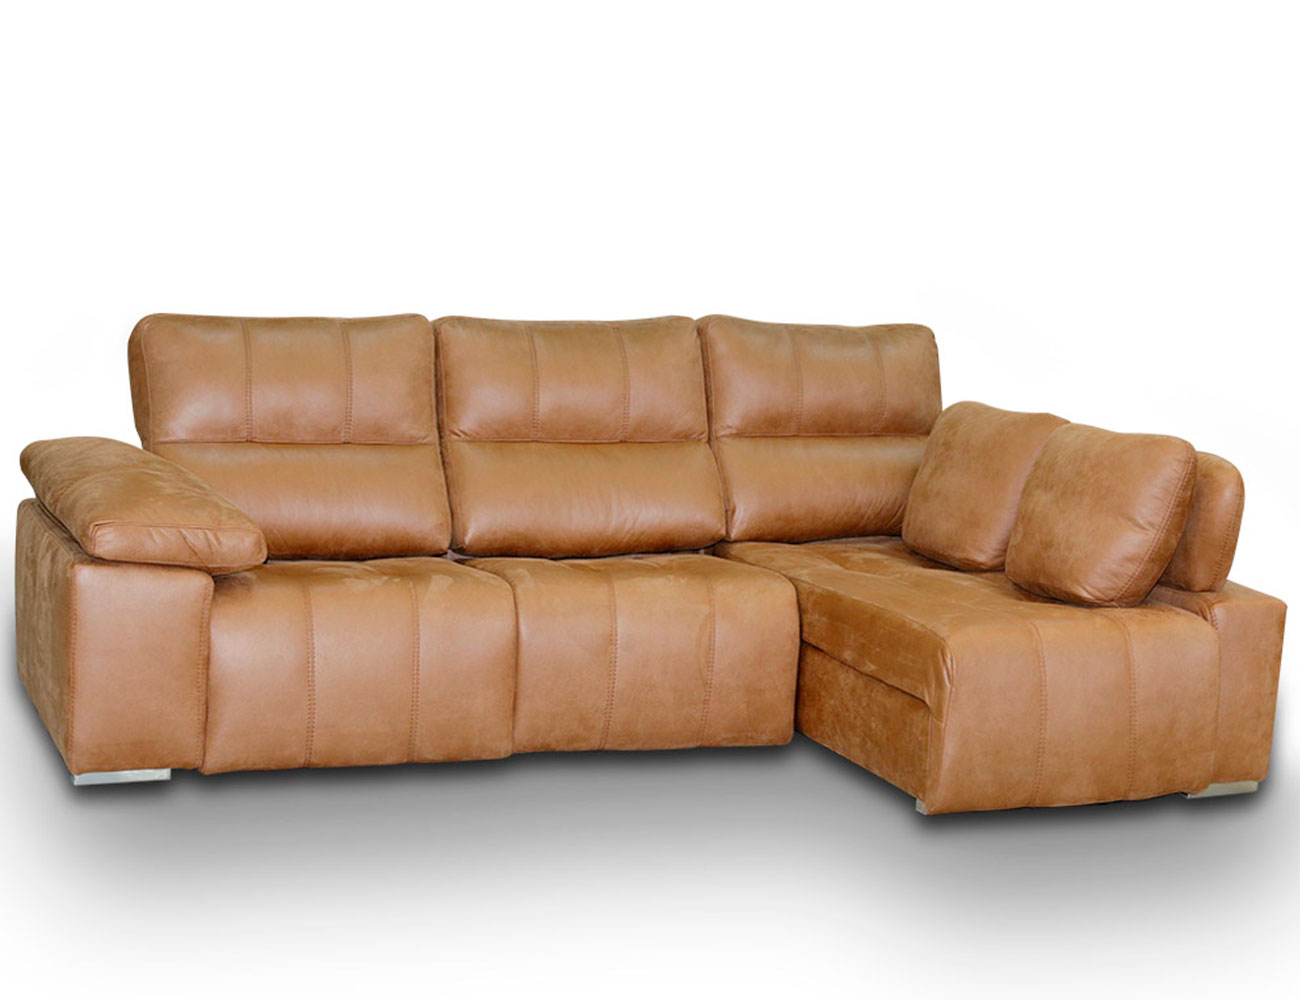 Sofa chaiselongue relax 2 motores anti manchas14